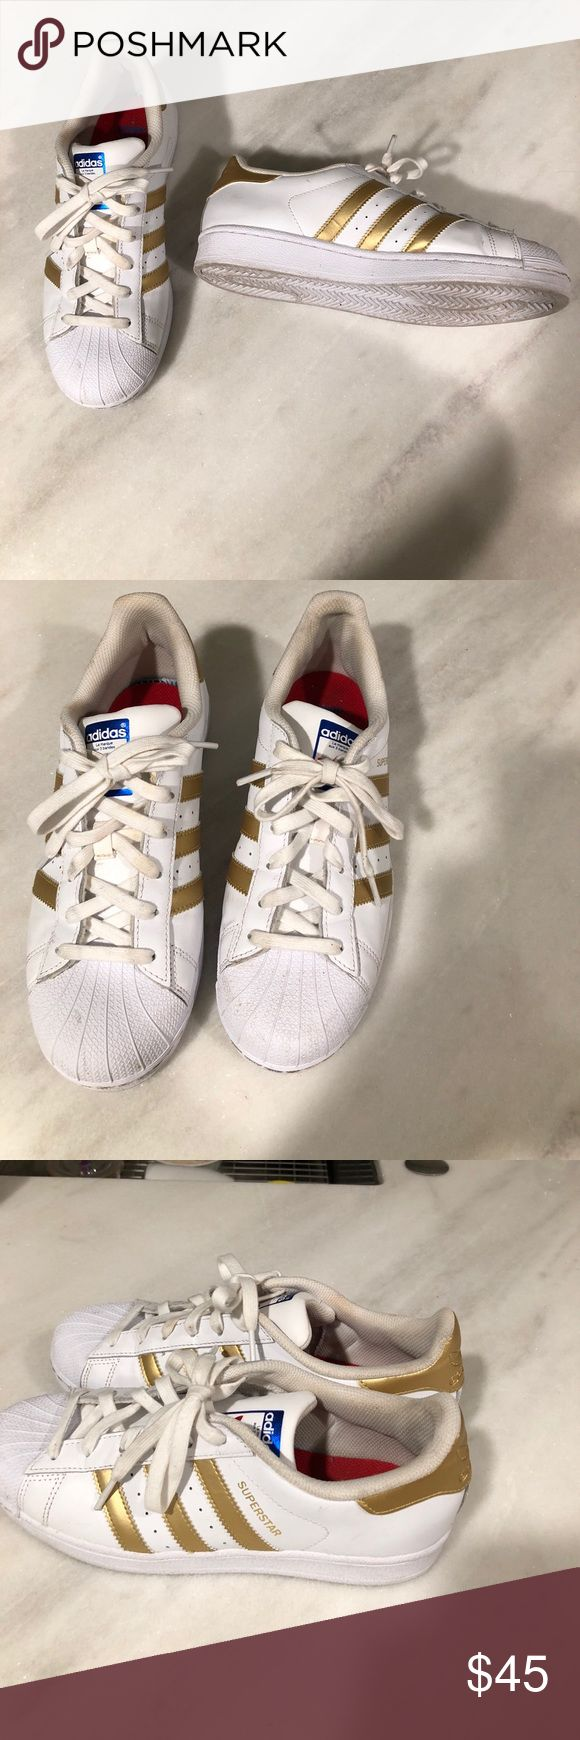 Adidas superstar gold sz 7 youth Great condition worn once  Adidas superstar size 7 youth  Some faint scuffs very little signs of wear  Gold is hard to find and limited   Reasonable offers accepts adidas Shoes Sneakers